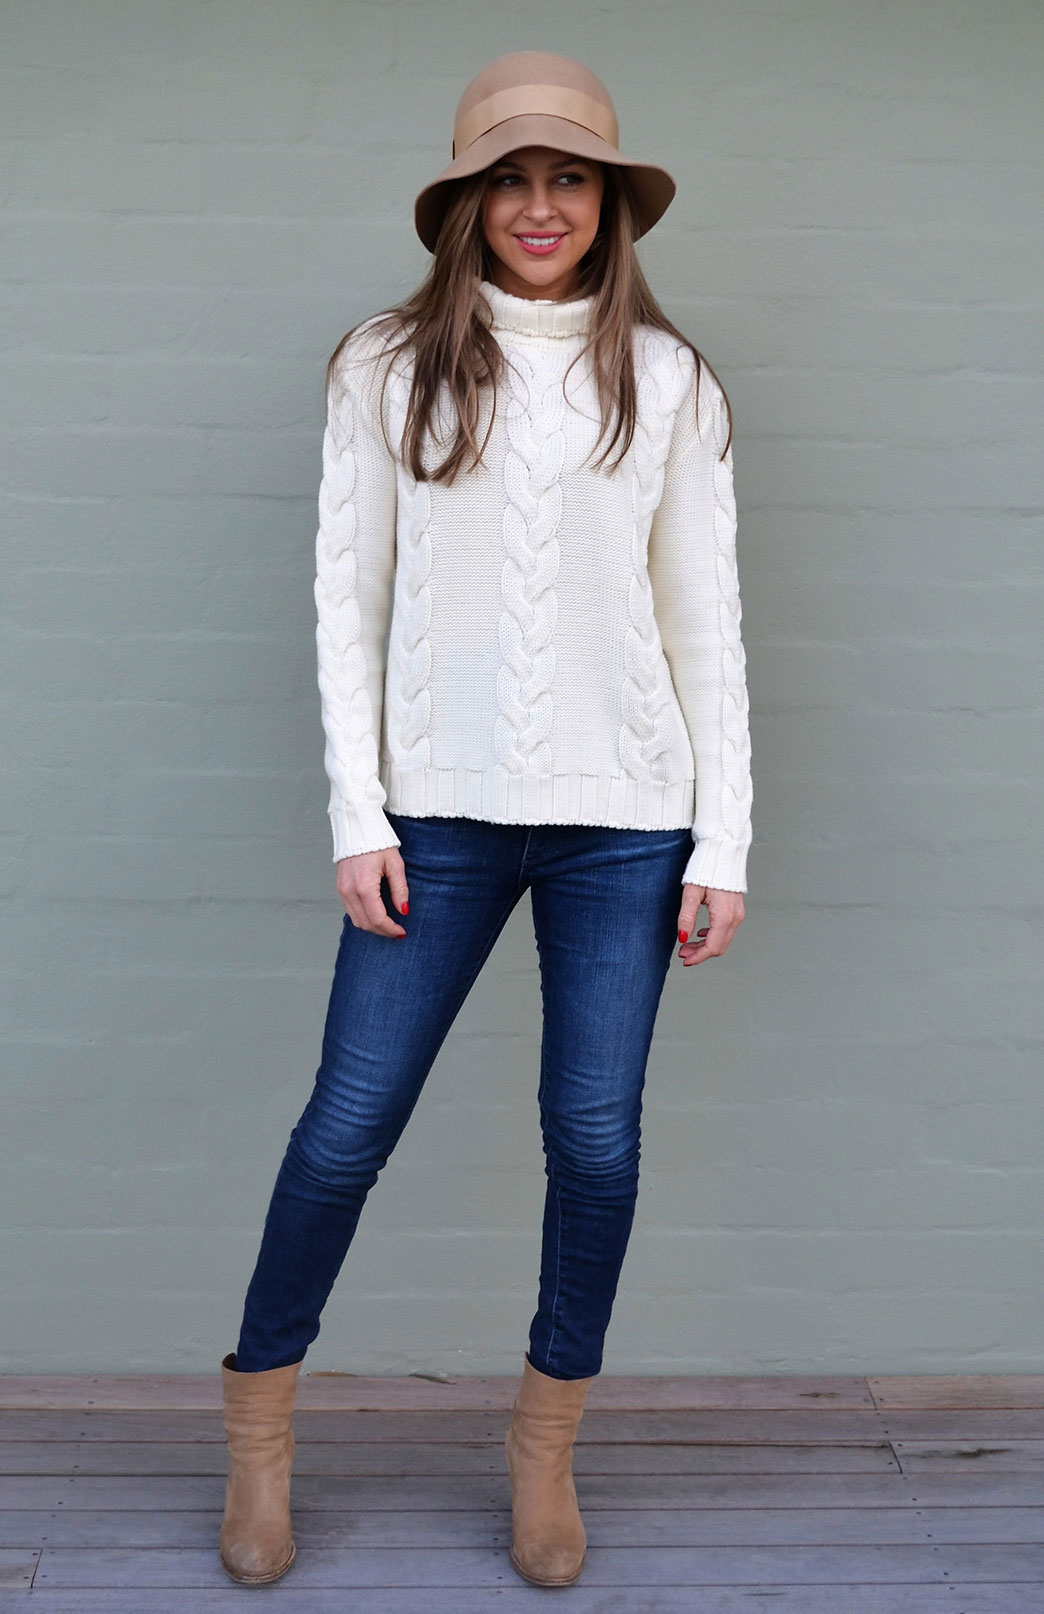 Cable Jumper - Women's Pure Merino Wool Ivory Cable Knit Jumper - Smitten Merino Tasmania Australia